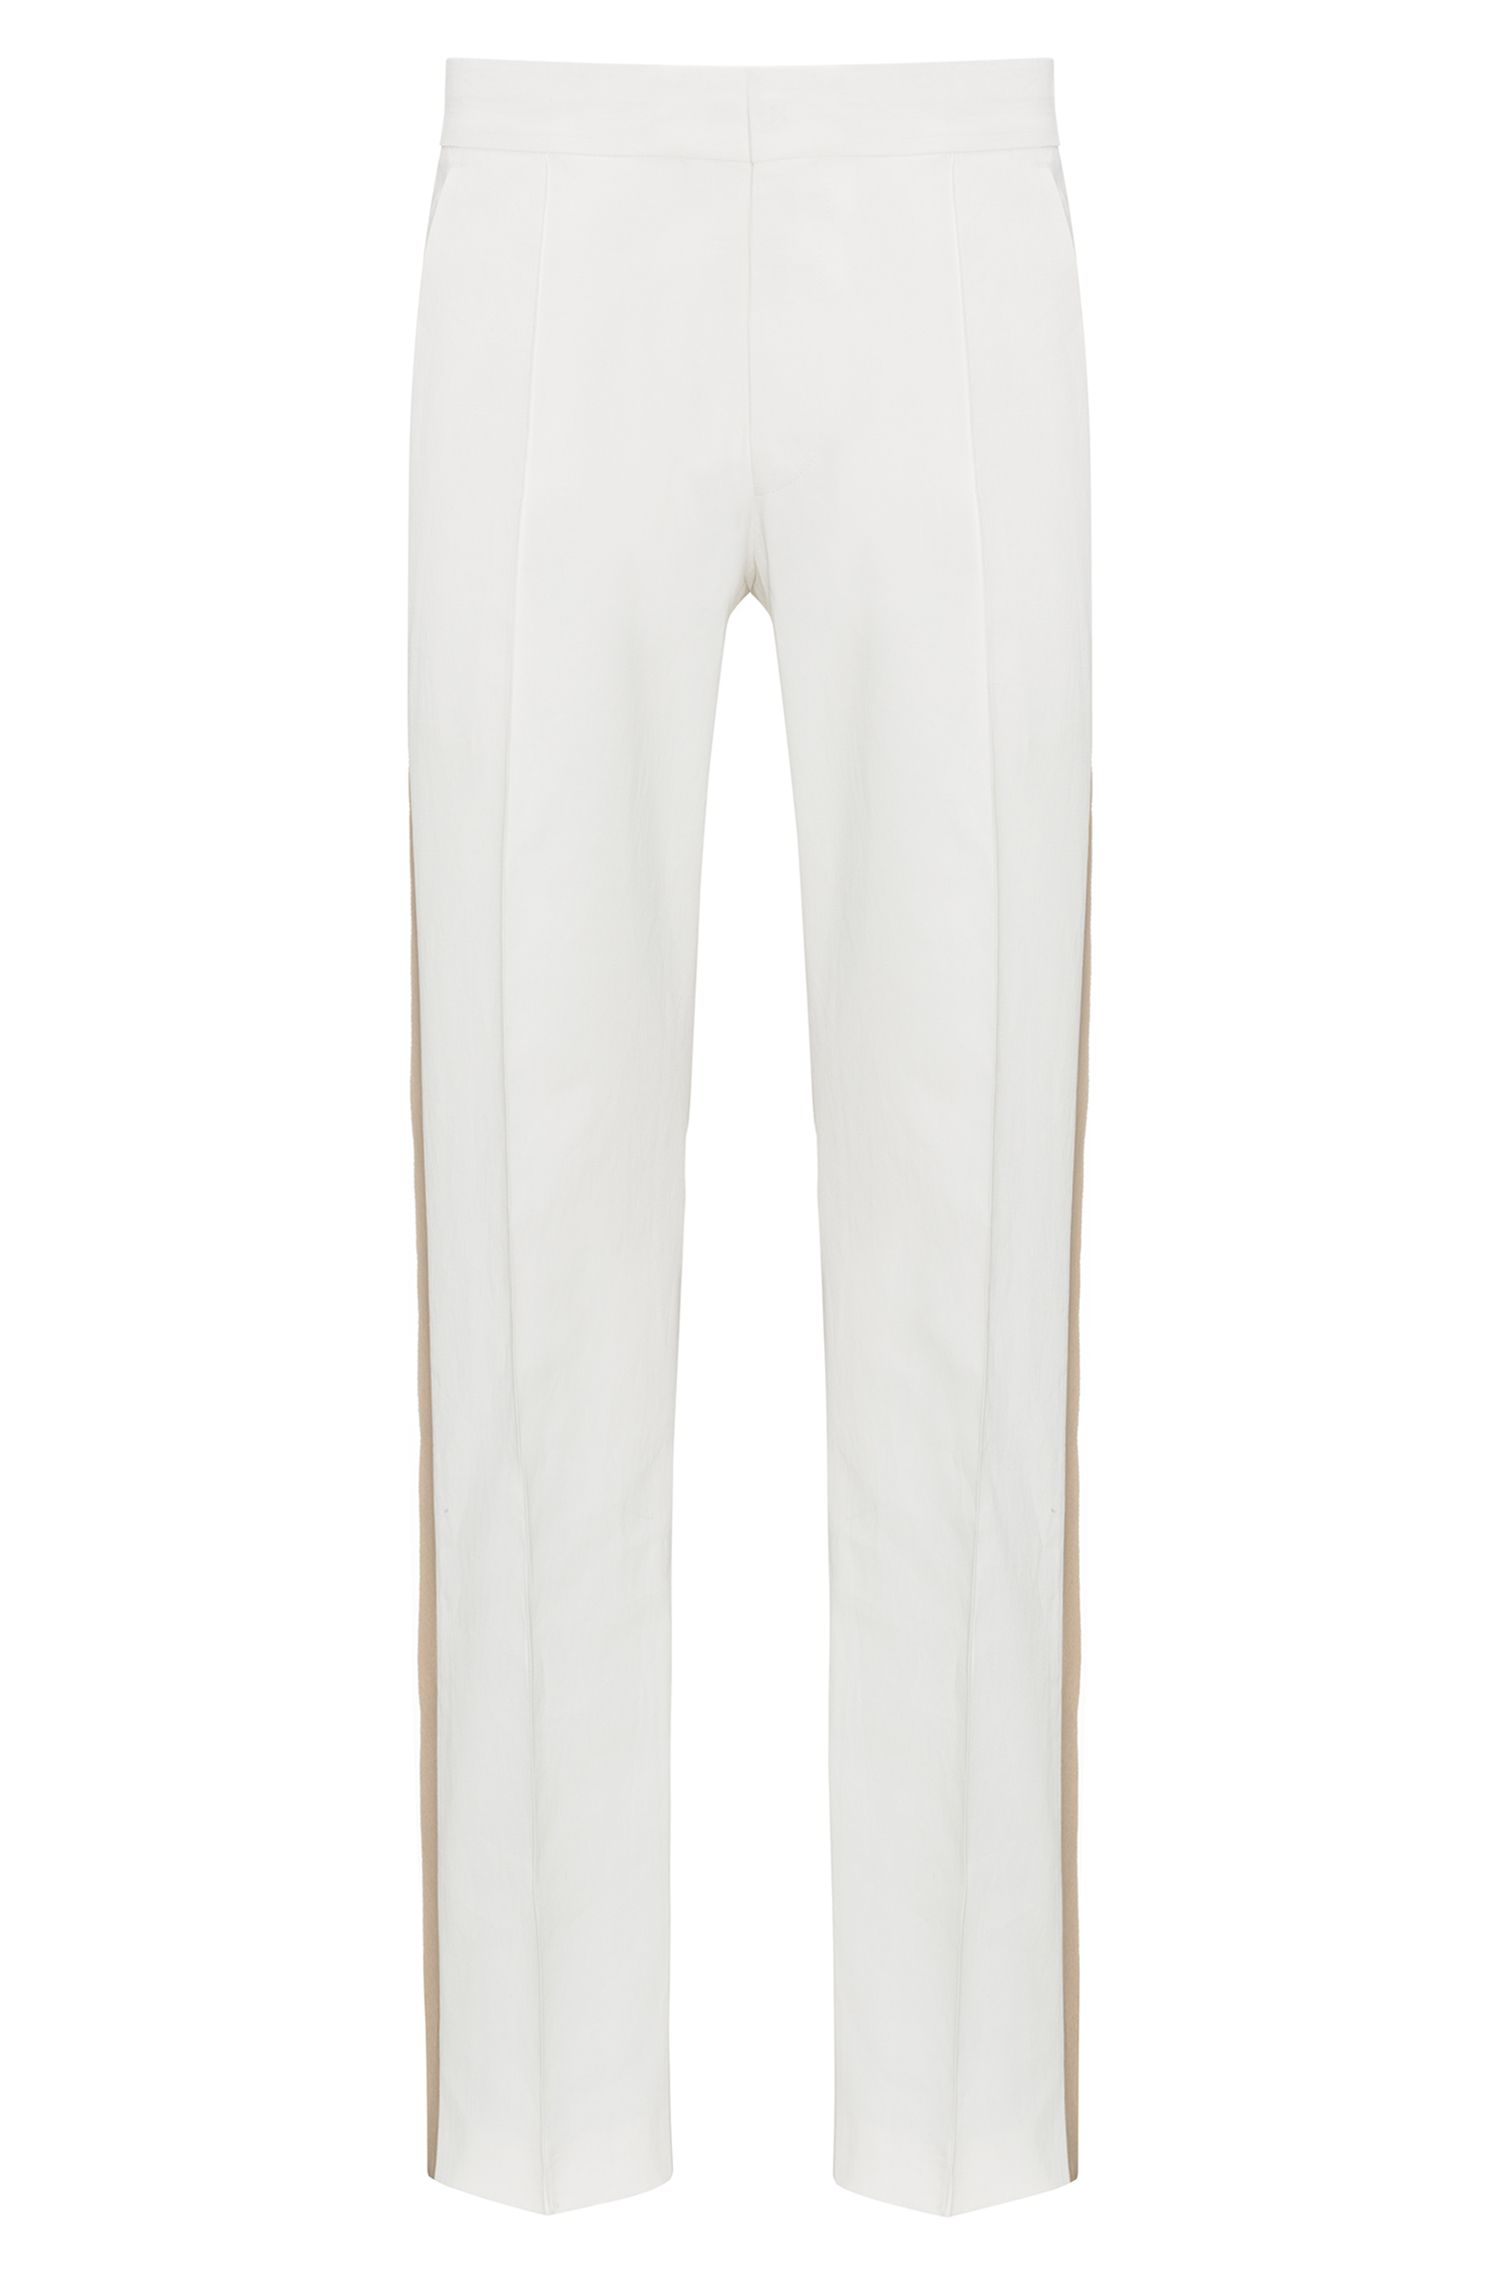 Virgin Wool Dress Pant, Oversized Fit | Fedo , Natural